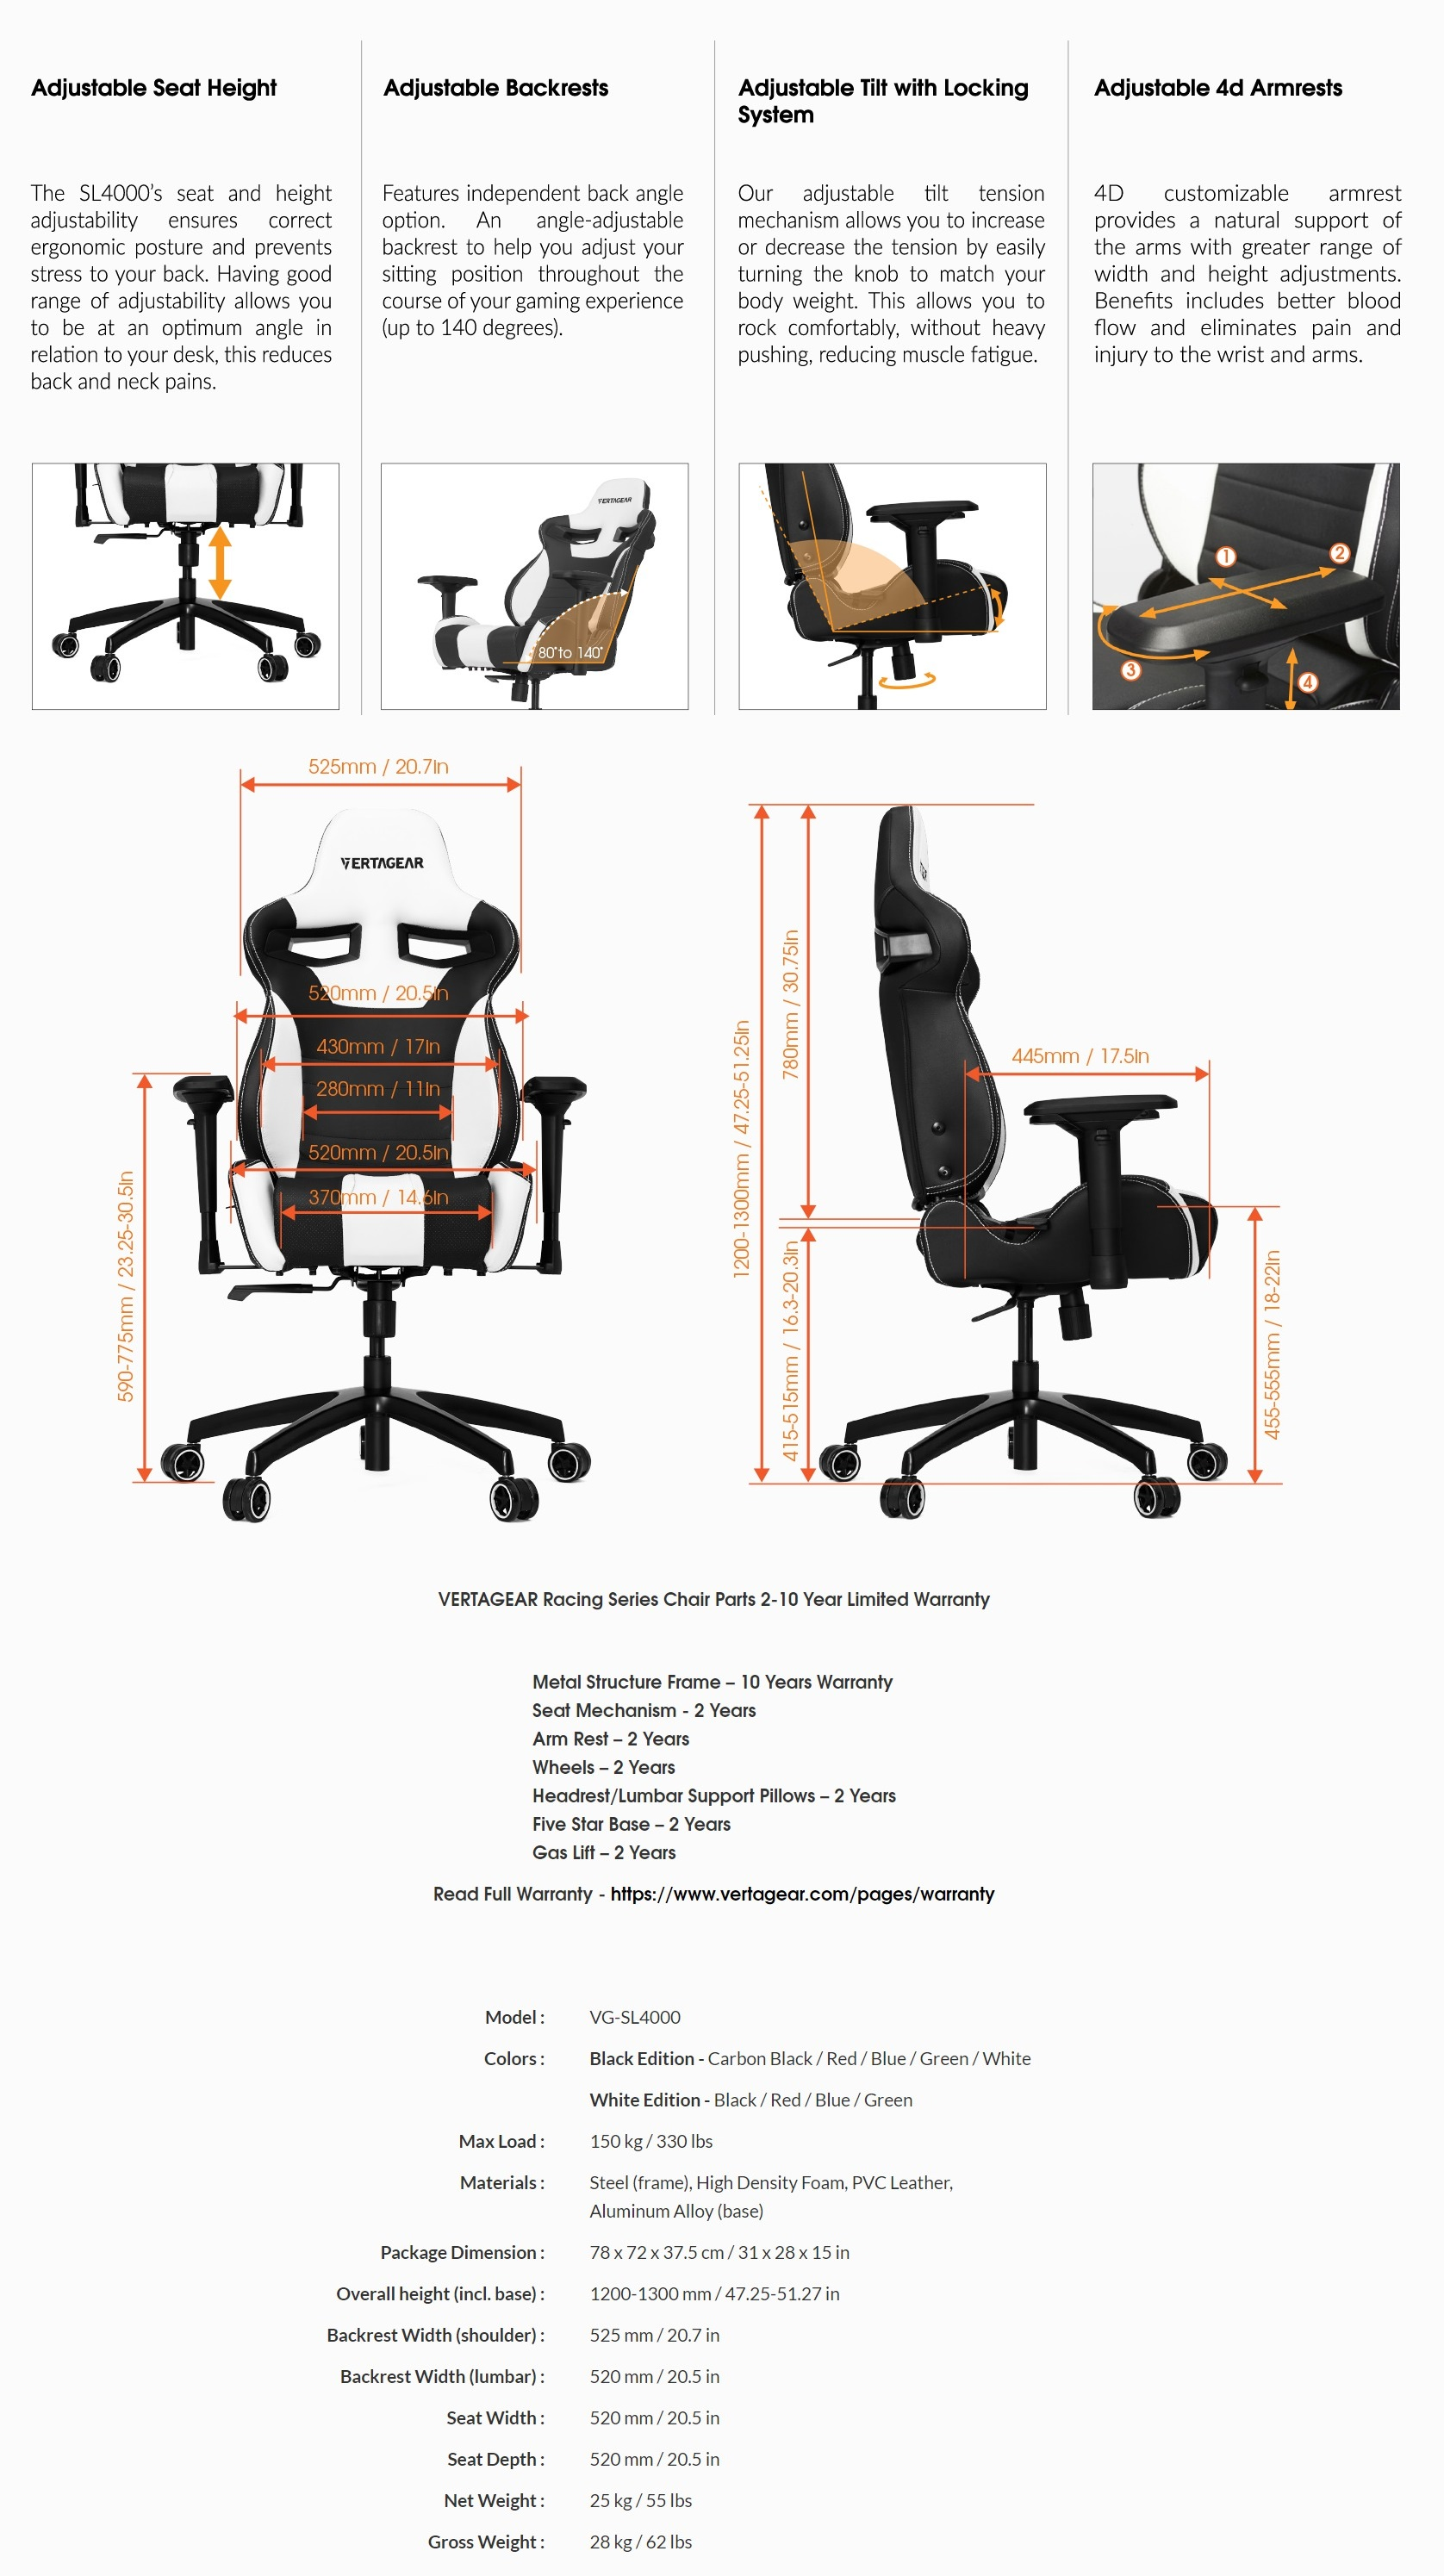 A large marketing image providing additional information about the product Vertagear Racing Series S-Line SL4000 Gaming Chair White/Black Edition - Additional alt info not provided